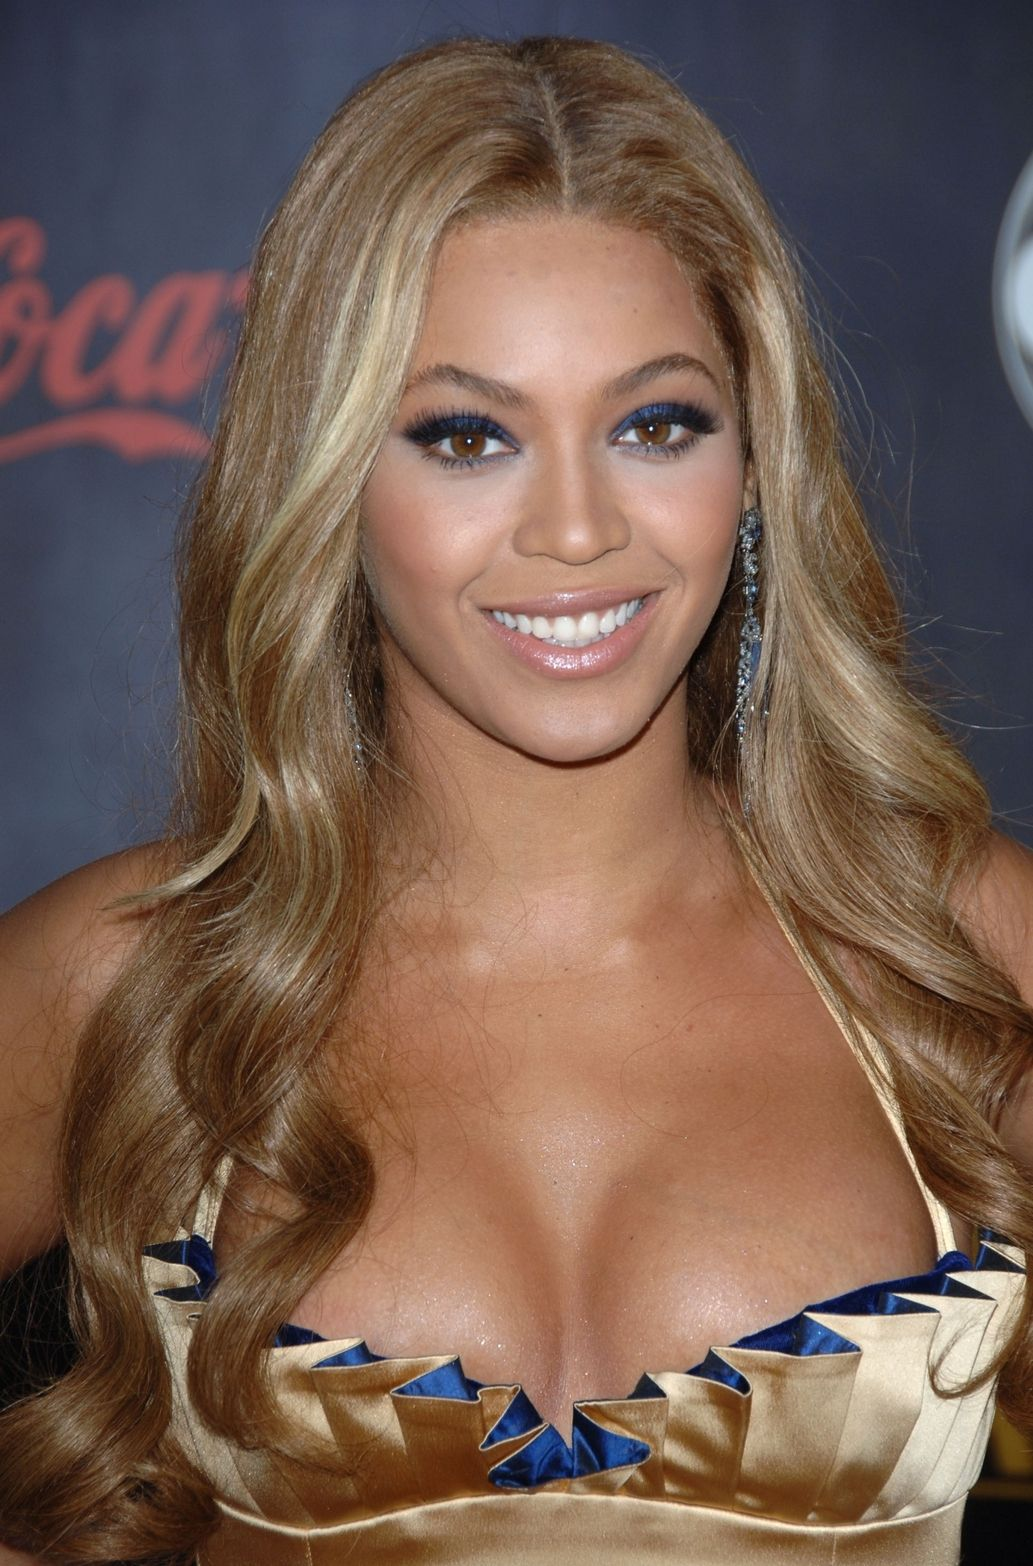 Beyonce breast size